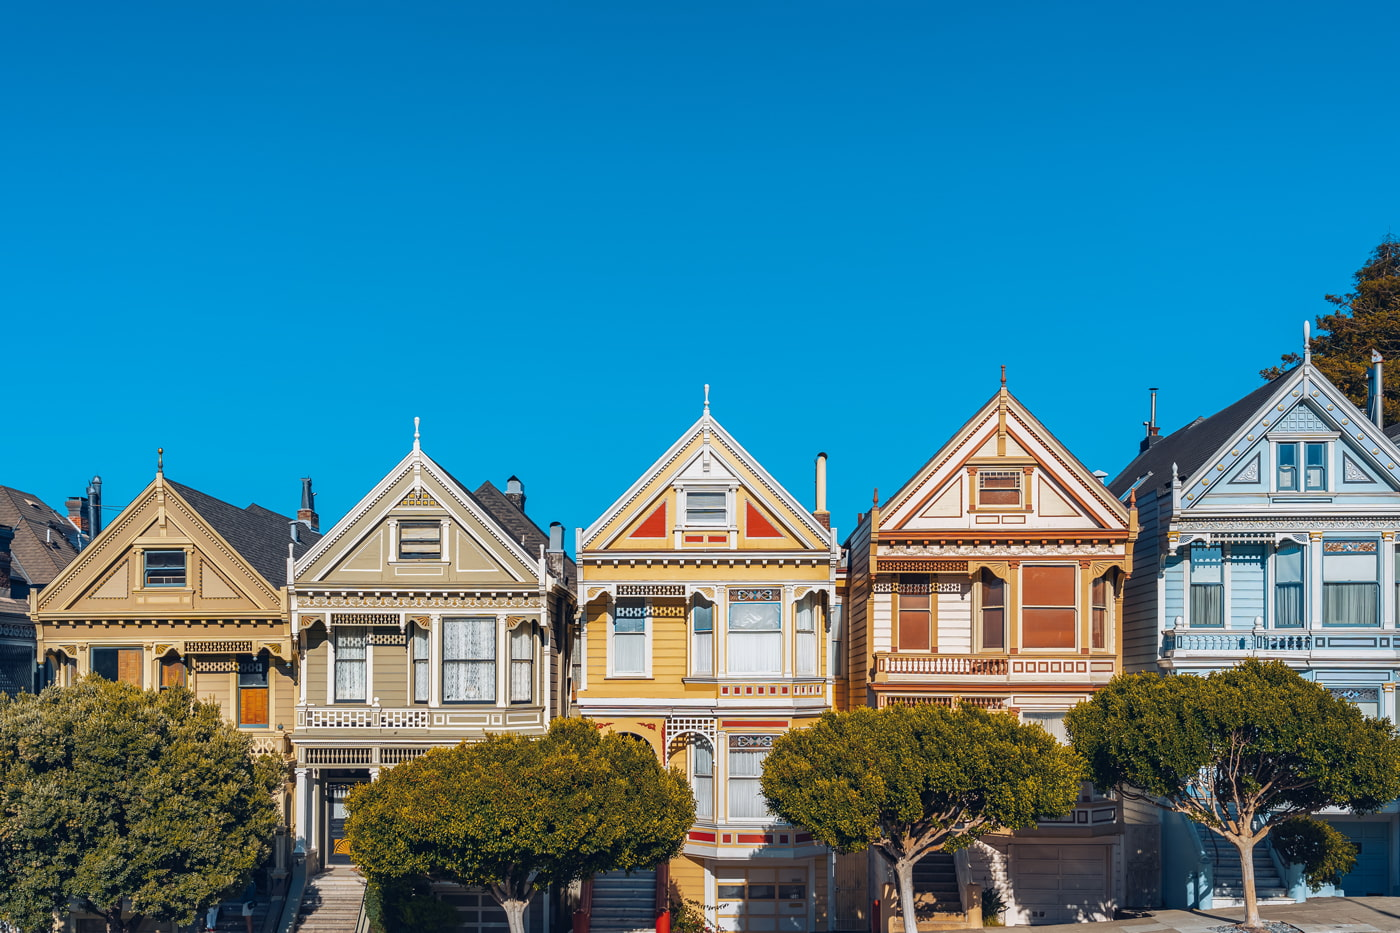 Queen Anne style houses, San Francisco